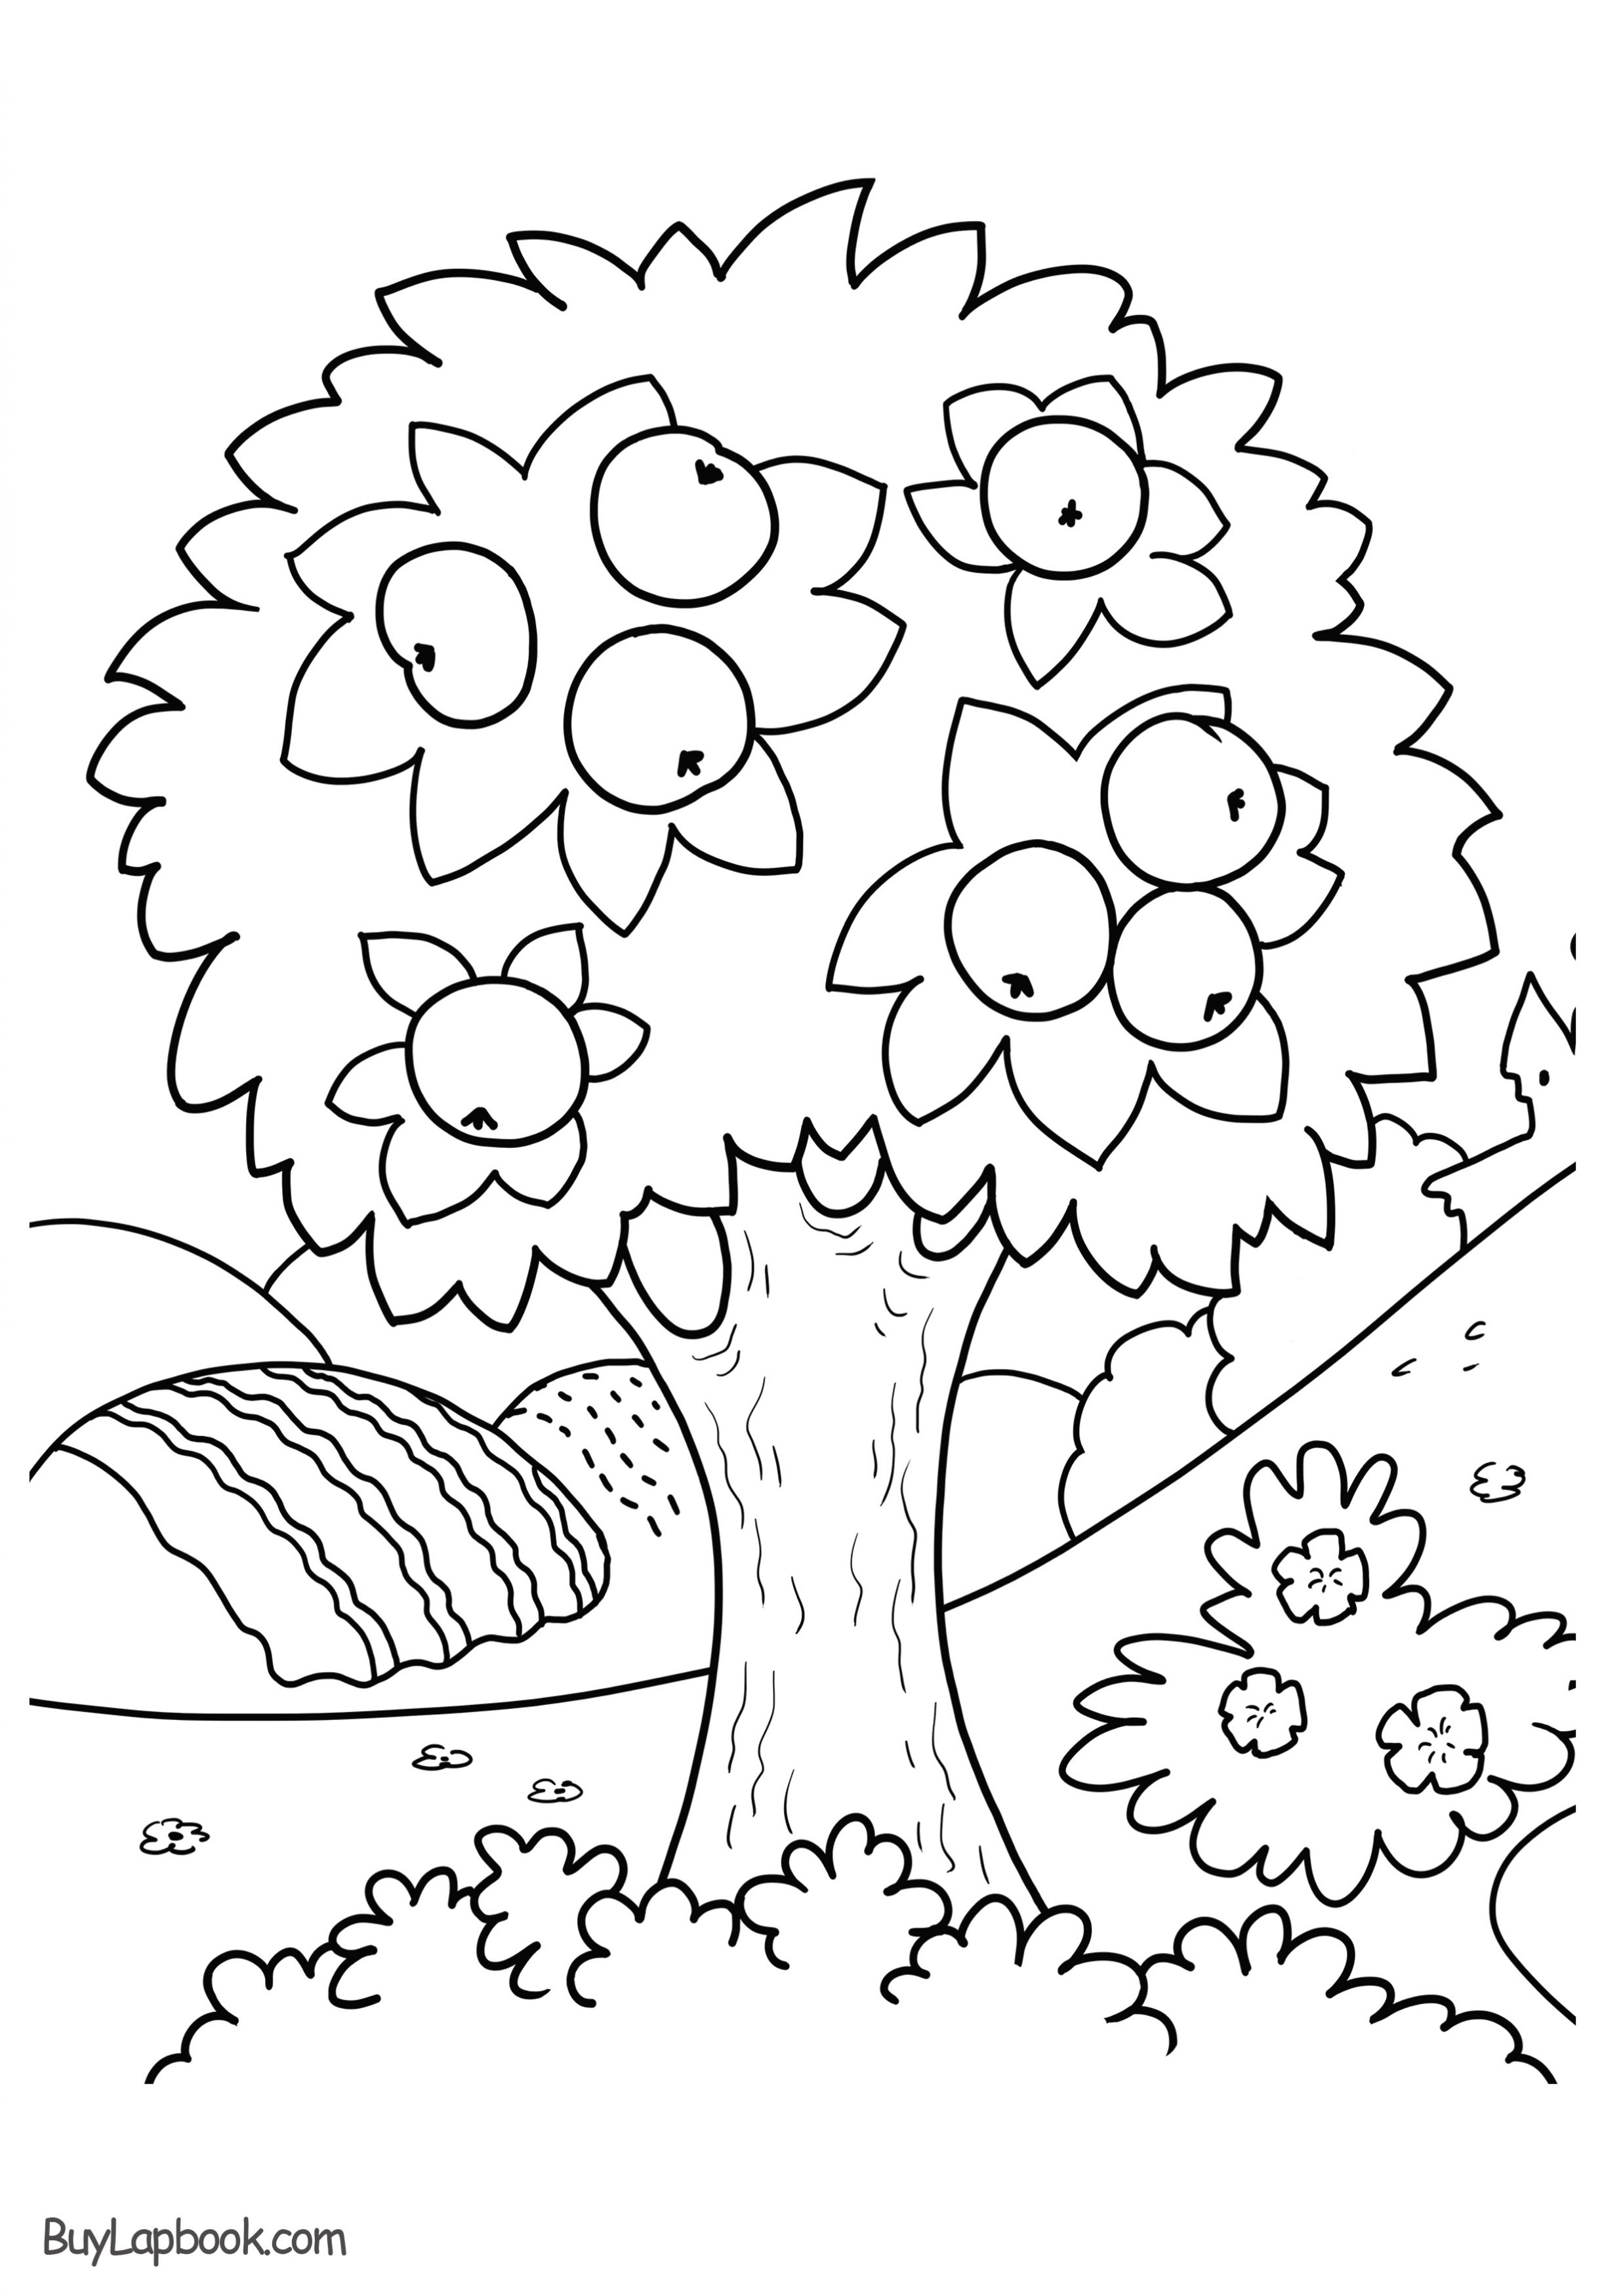 apple tree coloring sheet fig tree coloring page at getcoloringscom free coloring sheet apple tree